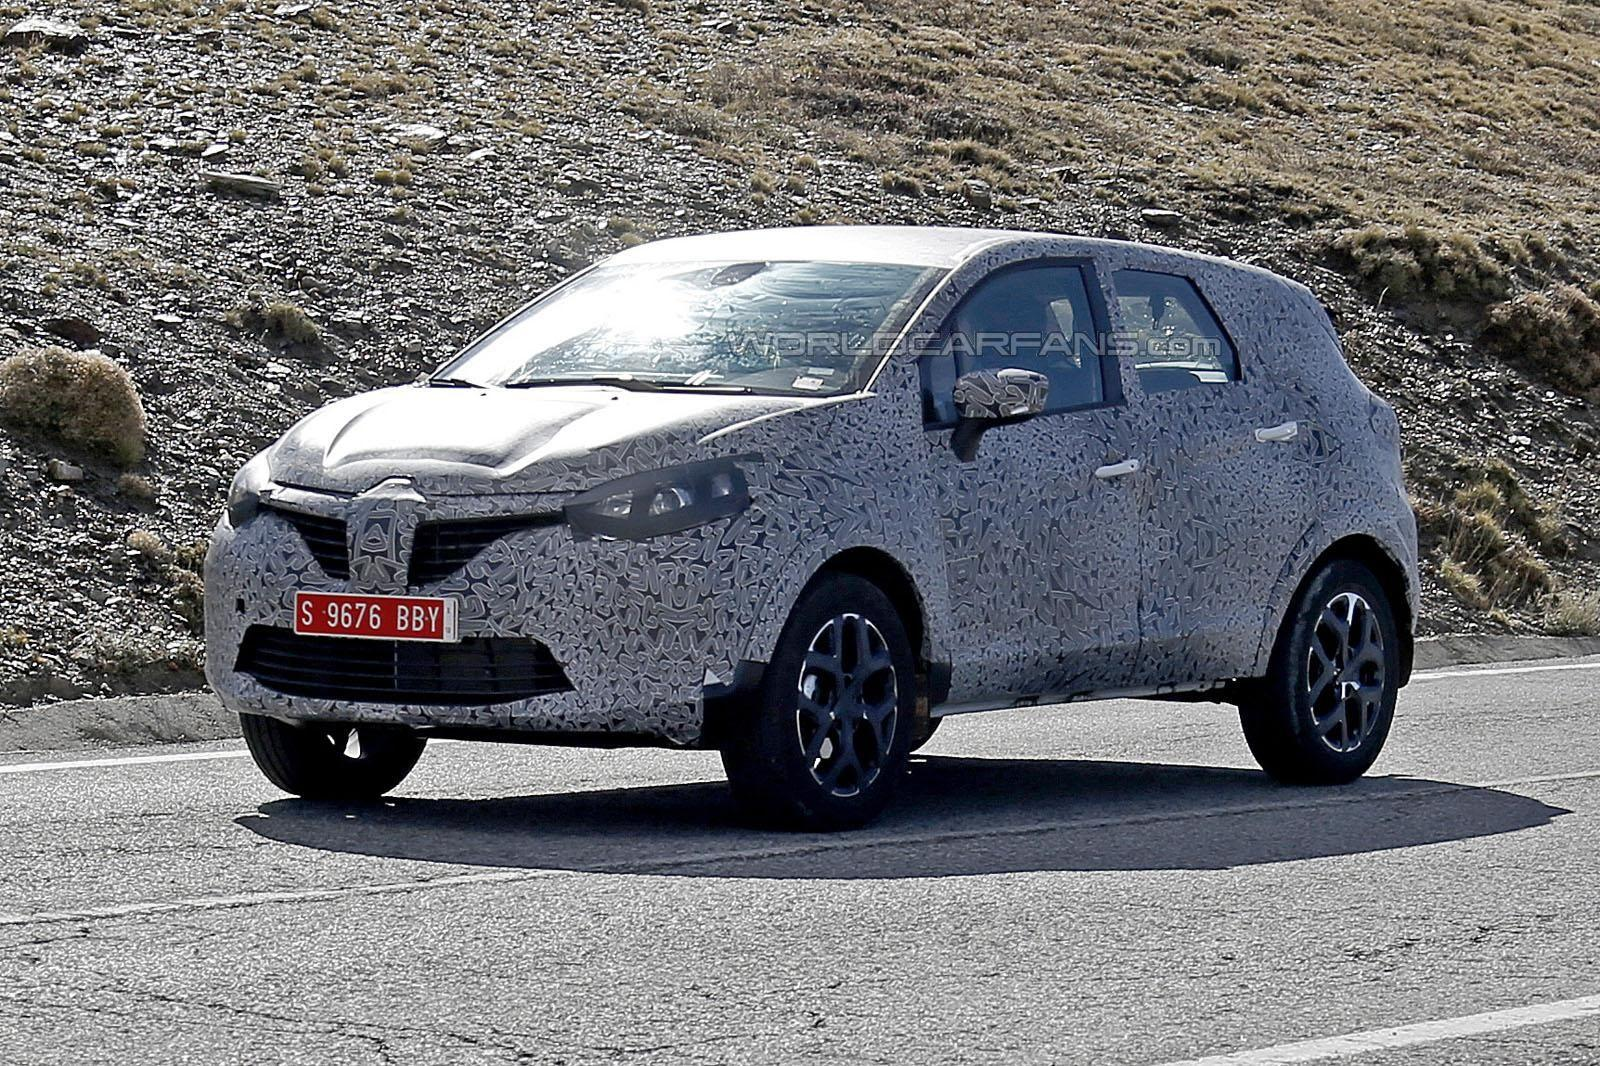 Renault tenté de sortir un Captur plus grand ?